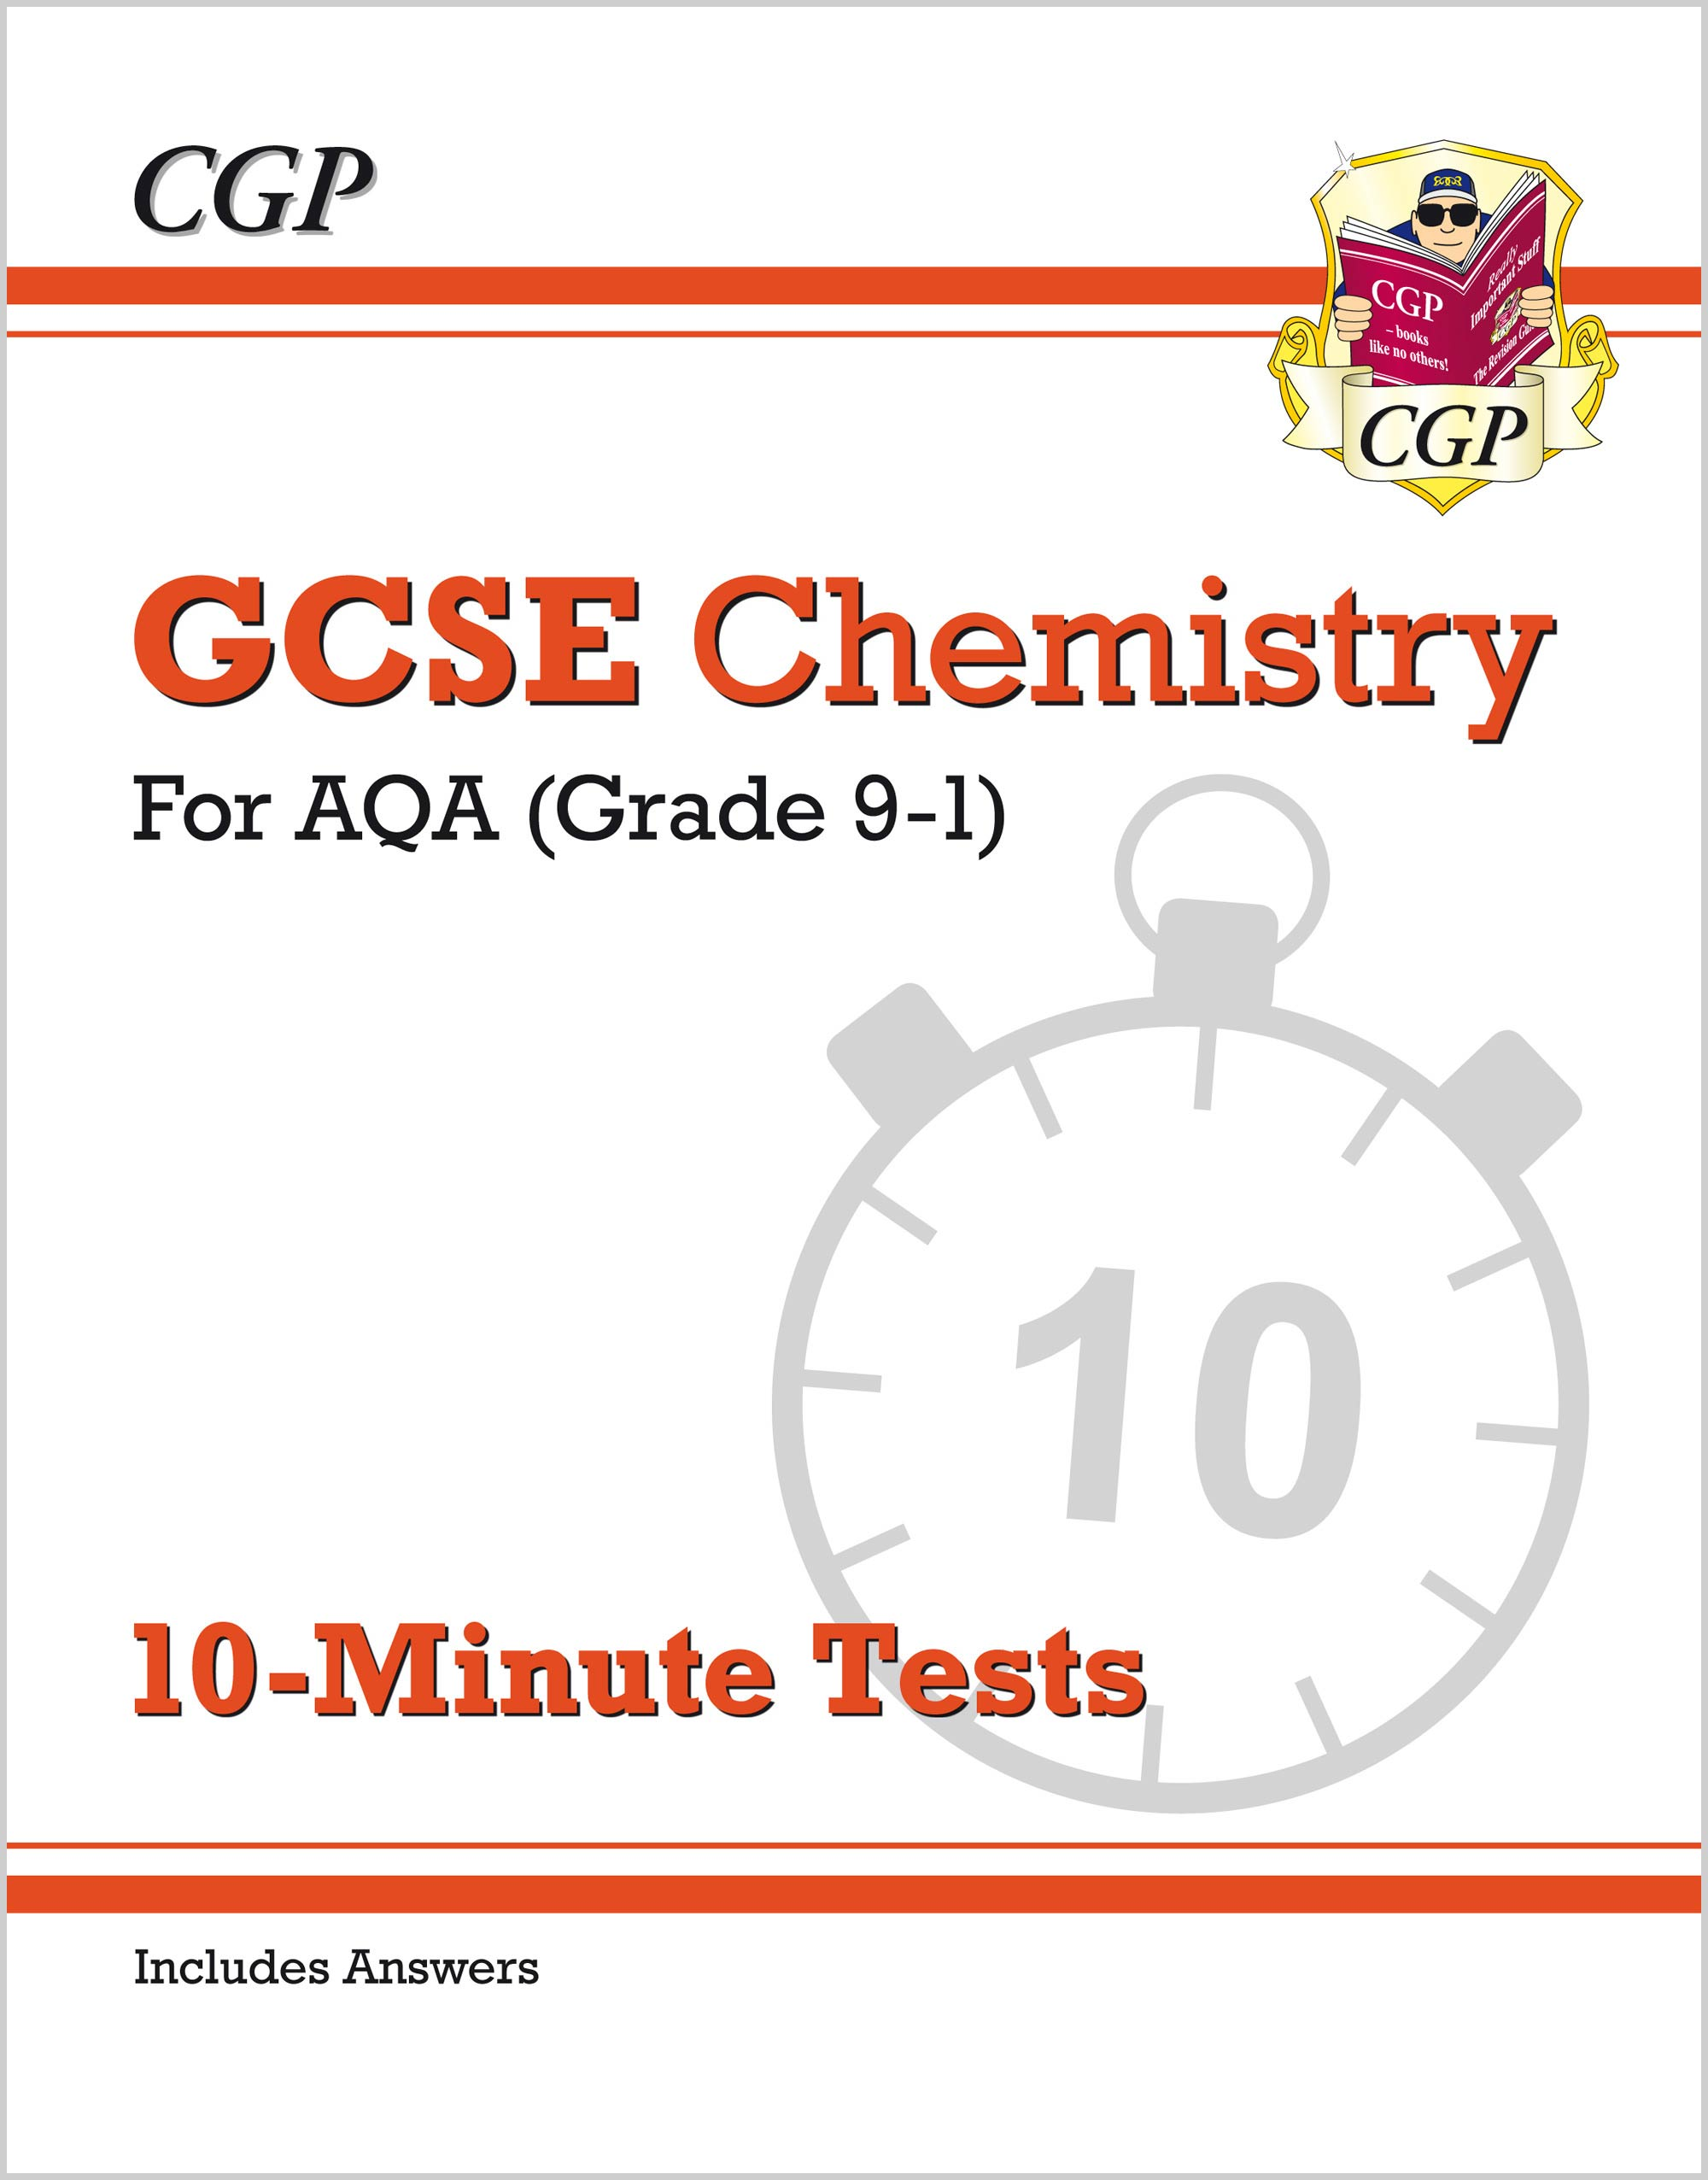 CAXP42 - Grade 9-1 GCSE Chemistry: AQA 10-Minute Tests (with answers)